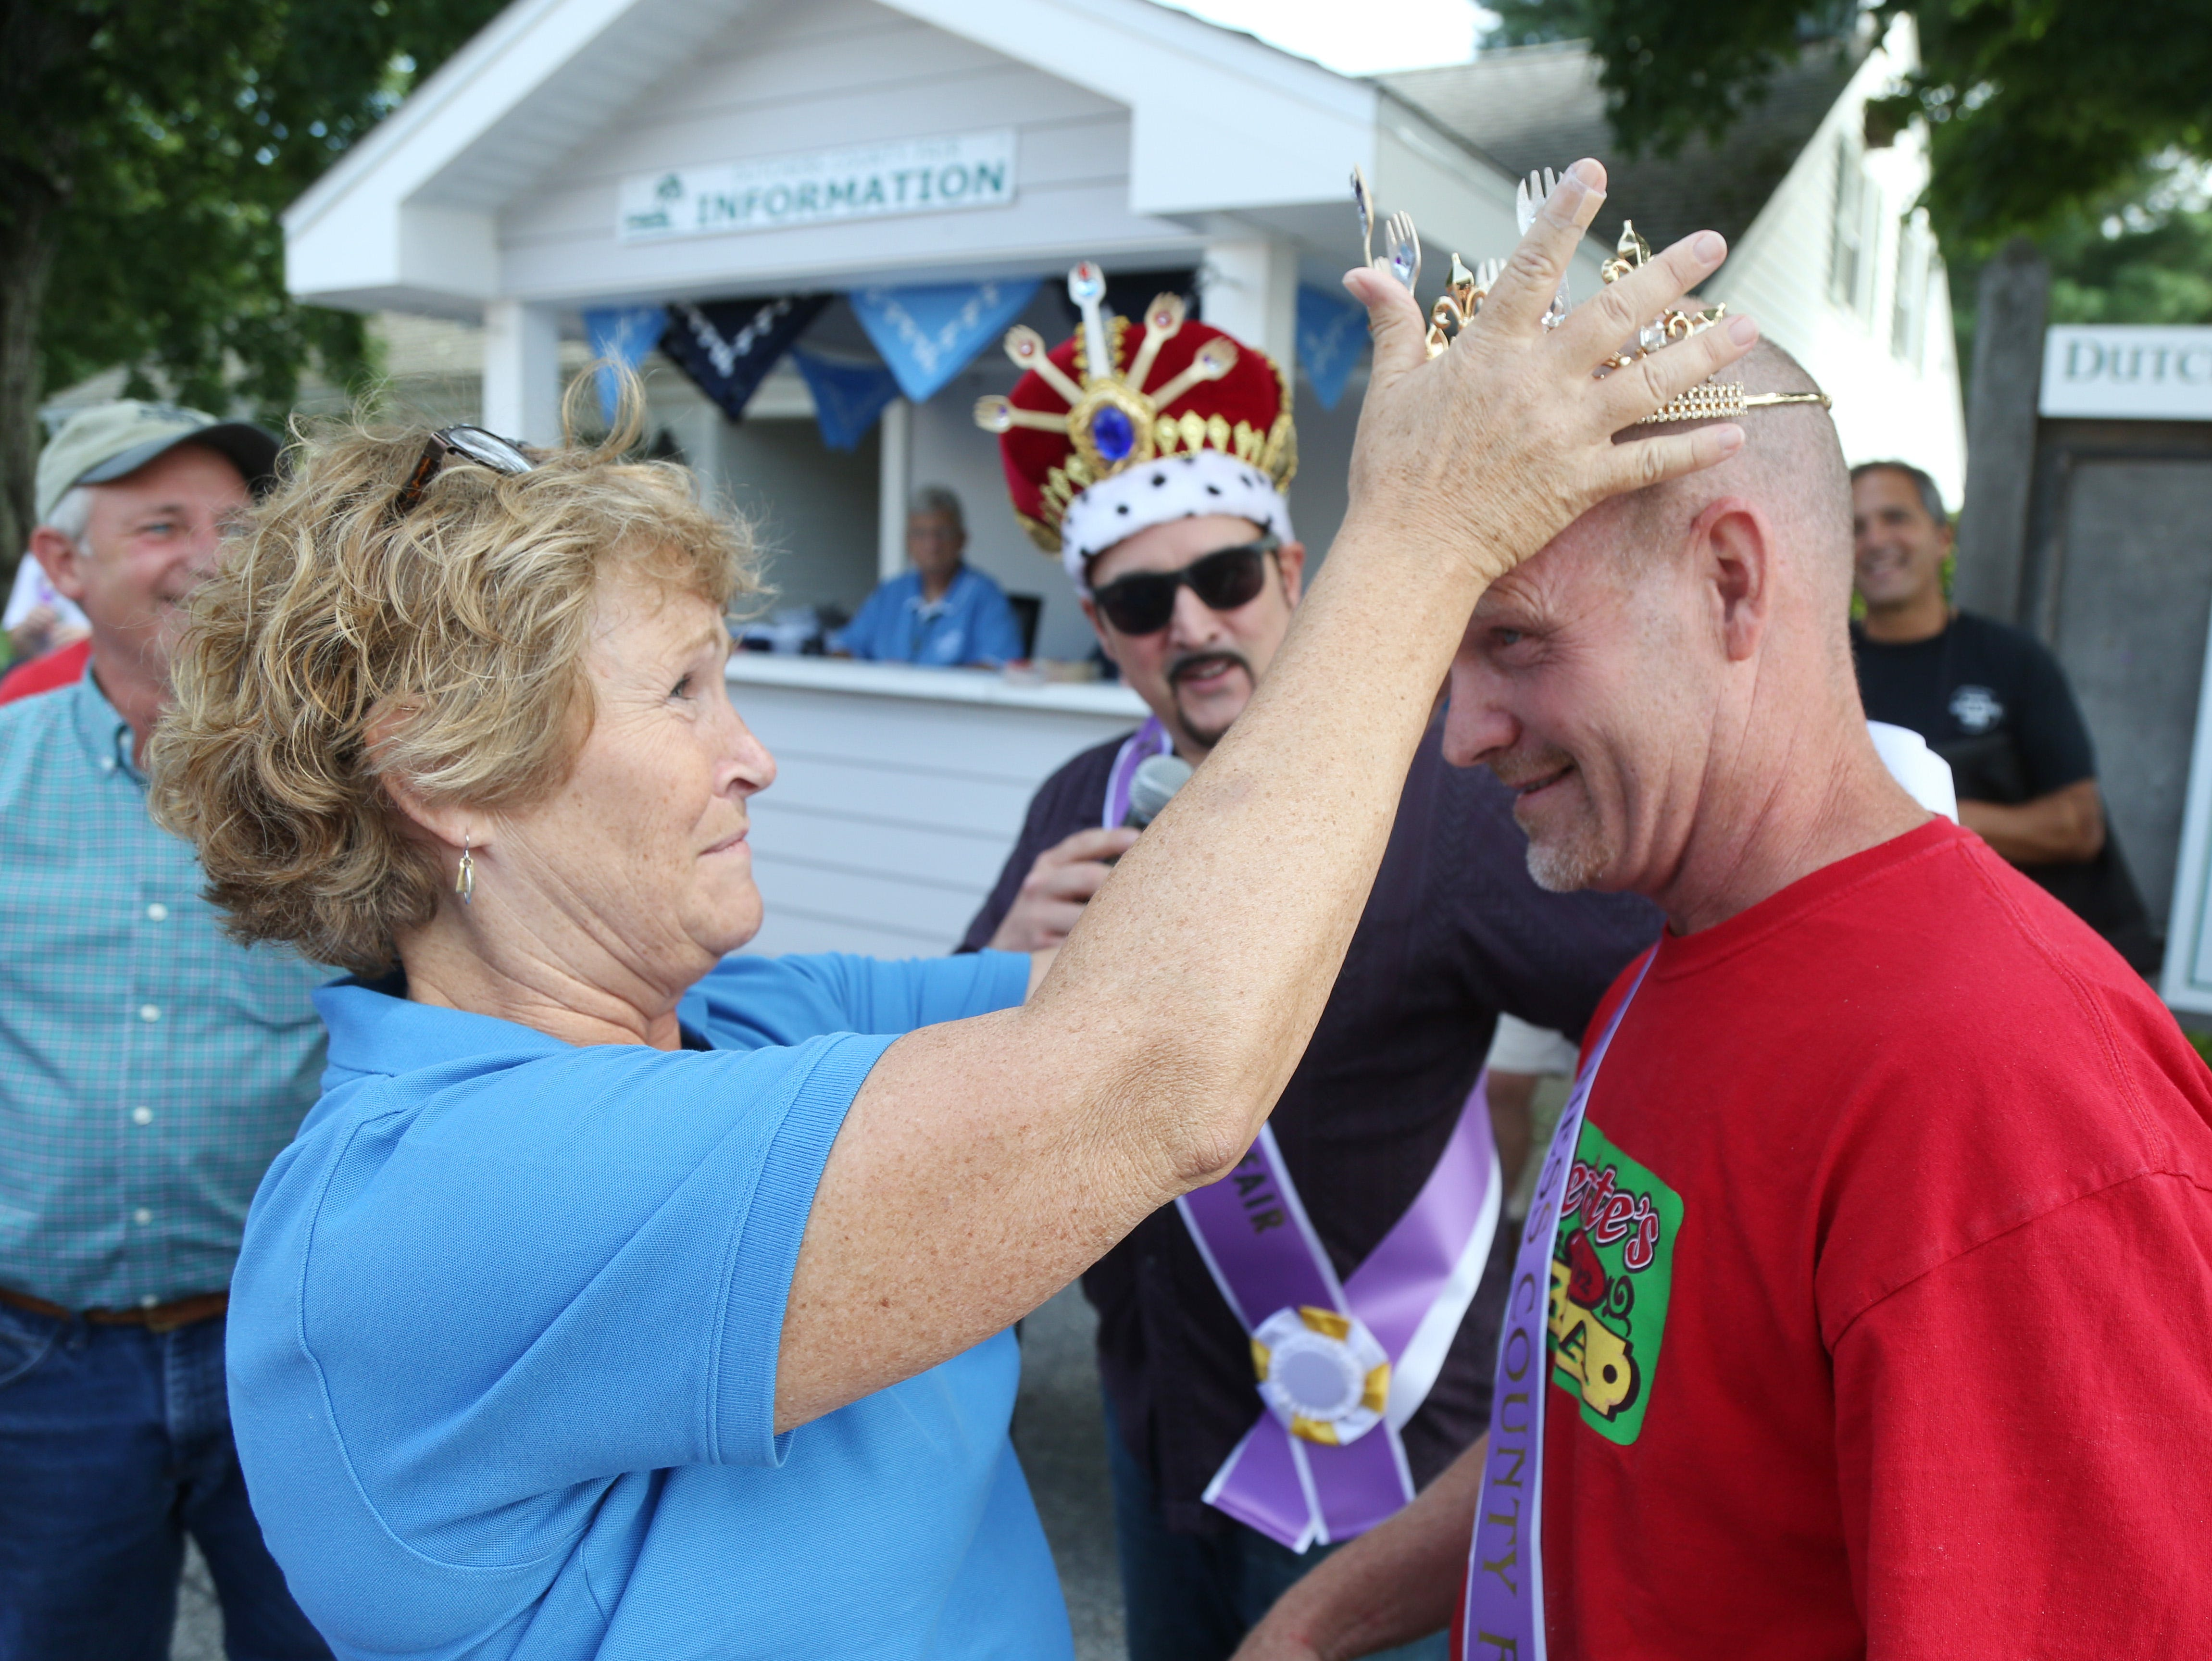 Deb Ashmann, vendor manager crowns Brian Gillette for winning the Sporkrun competition on the opening day of the Dutchess County Fair in Rhinebeck on August 21 2018.  Gillette, of Oneonta won with his daughter's creation, a bacon macaroni and cheese calzone.